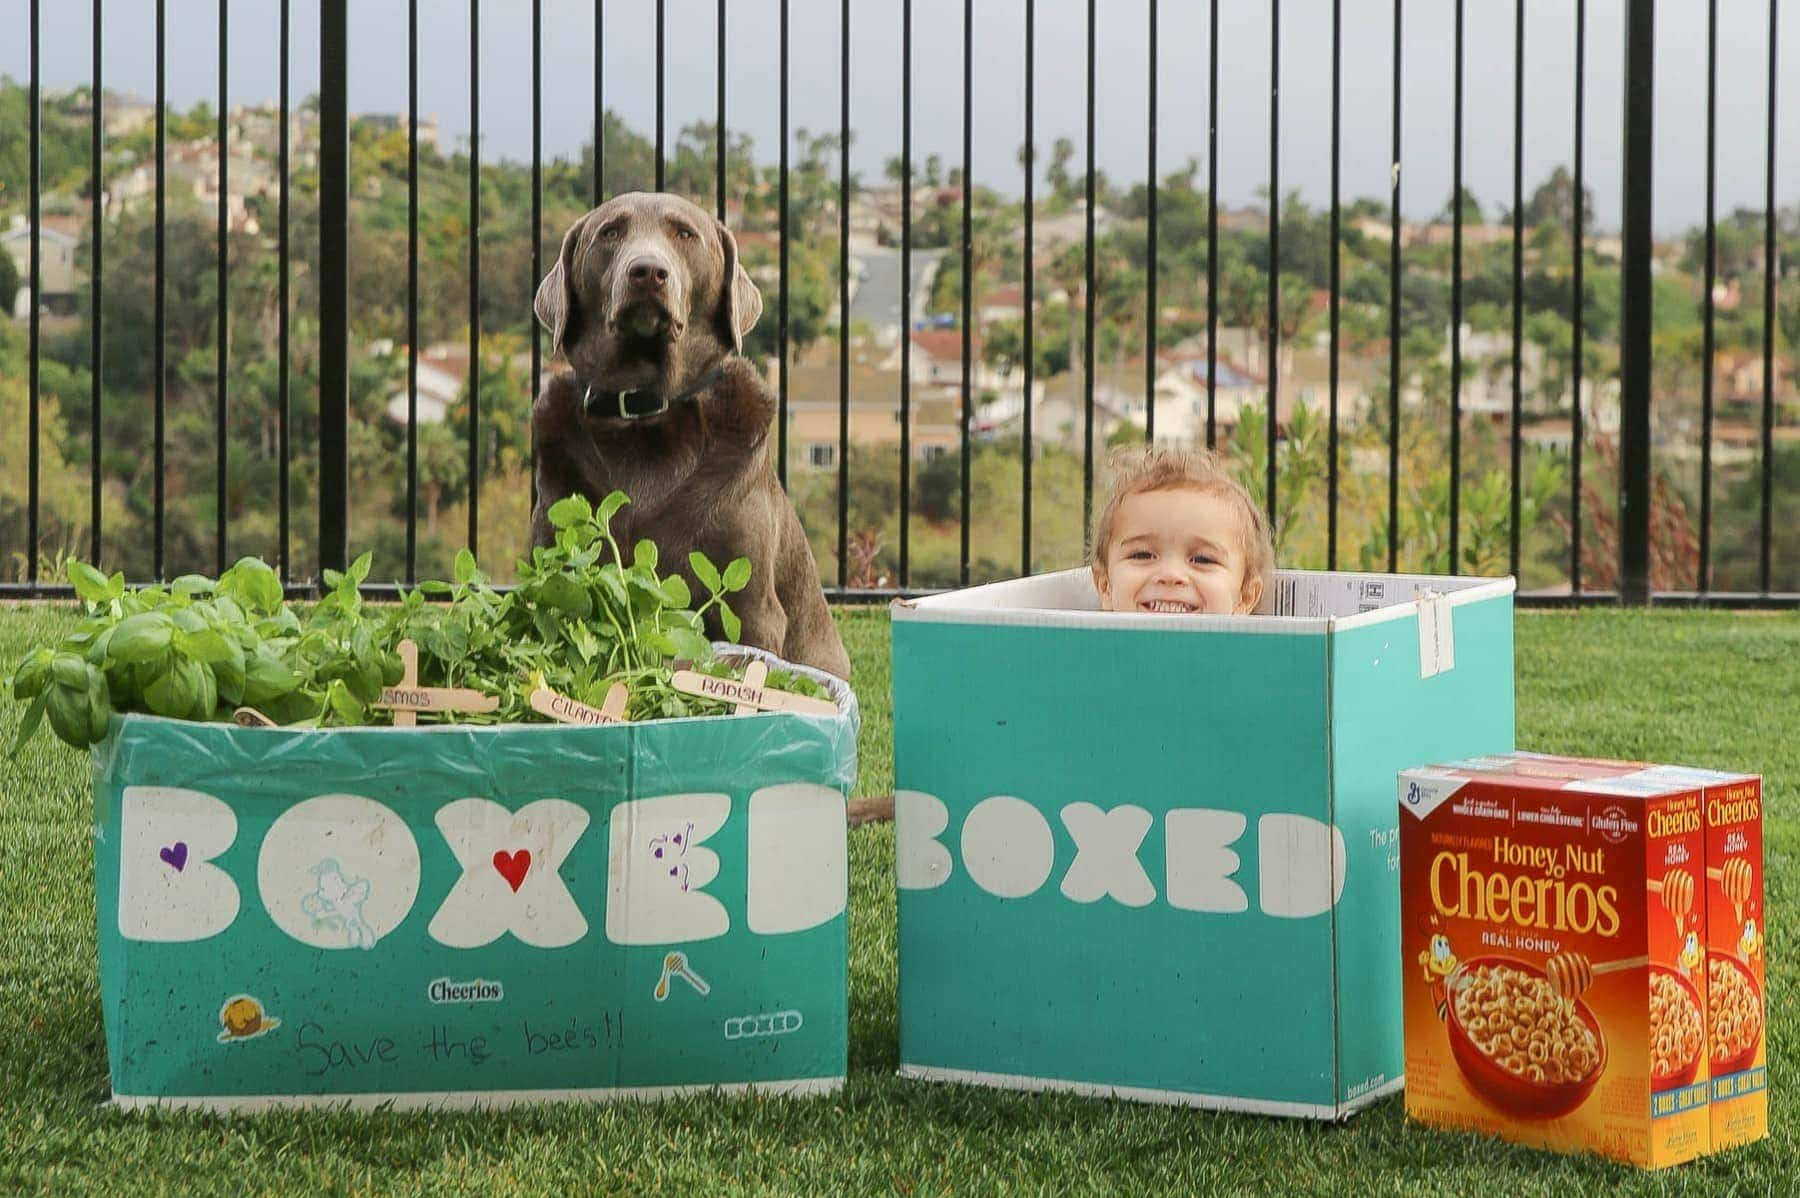 Child and family dog playing in the Boxed and Honey Nut Cheerios mini garden